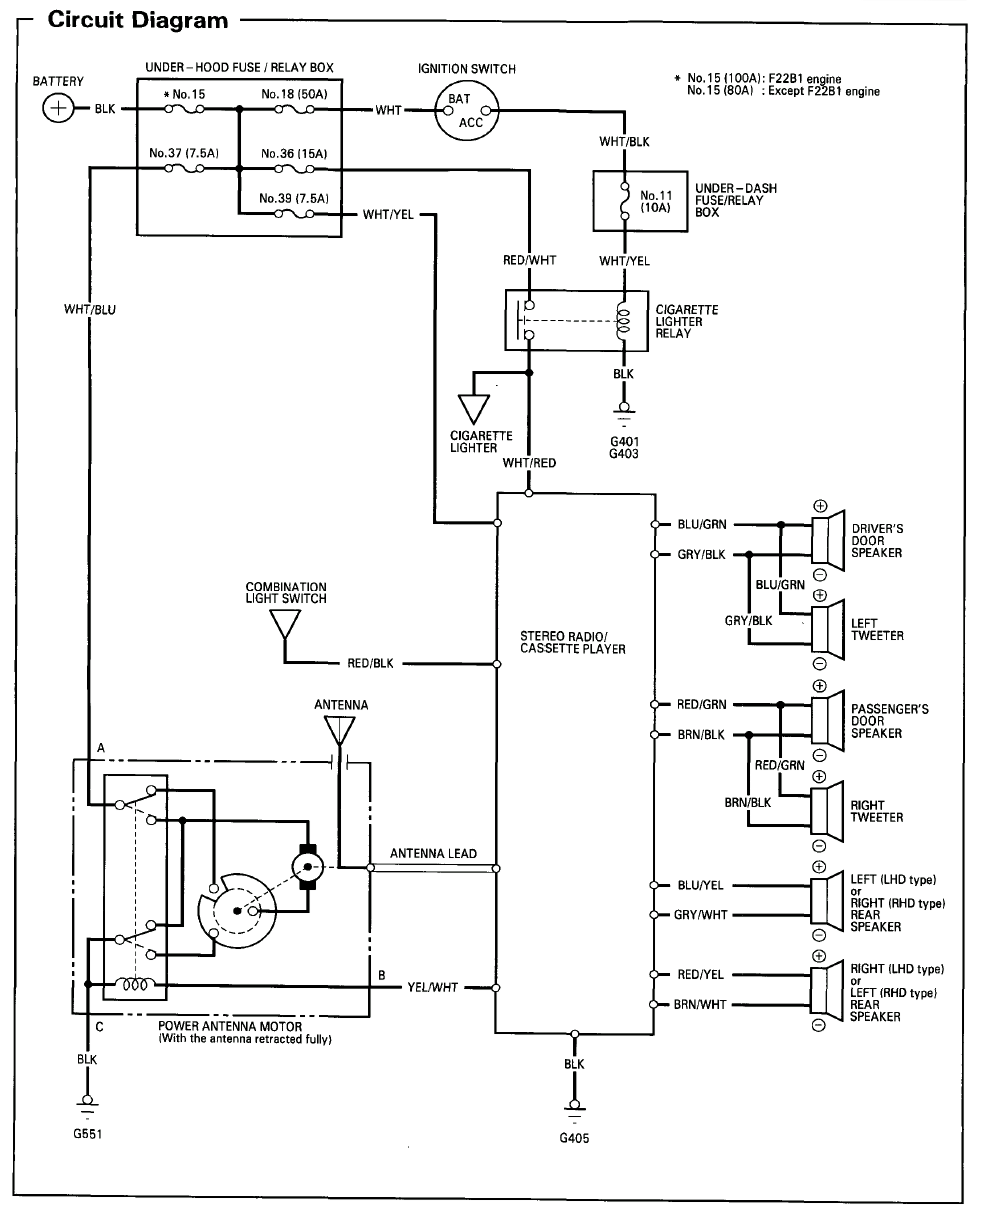 94 Accord Radio Wiring Diagram Cant Find Right One 3248776 on 94 chevy 1500 fuse diagram